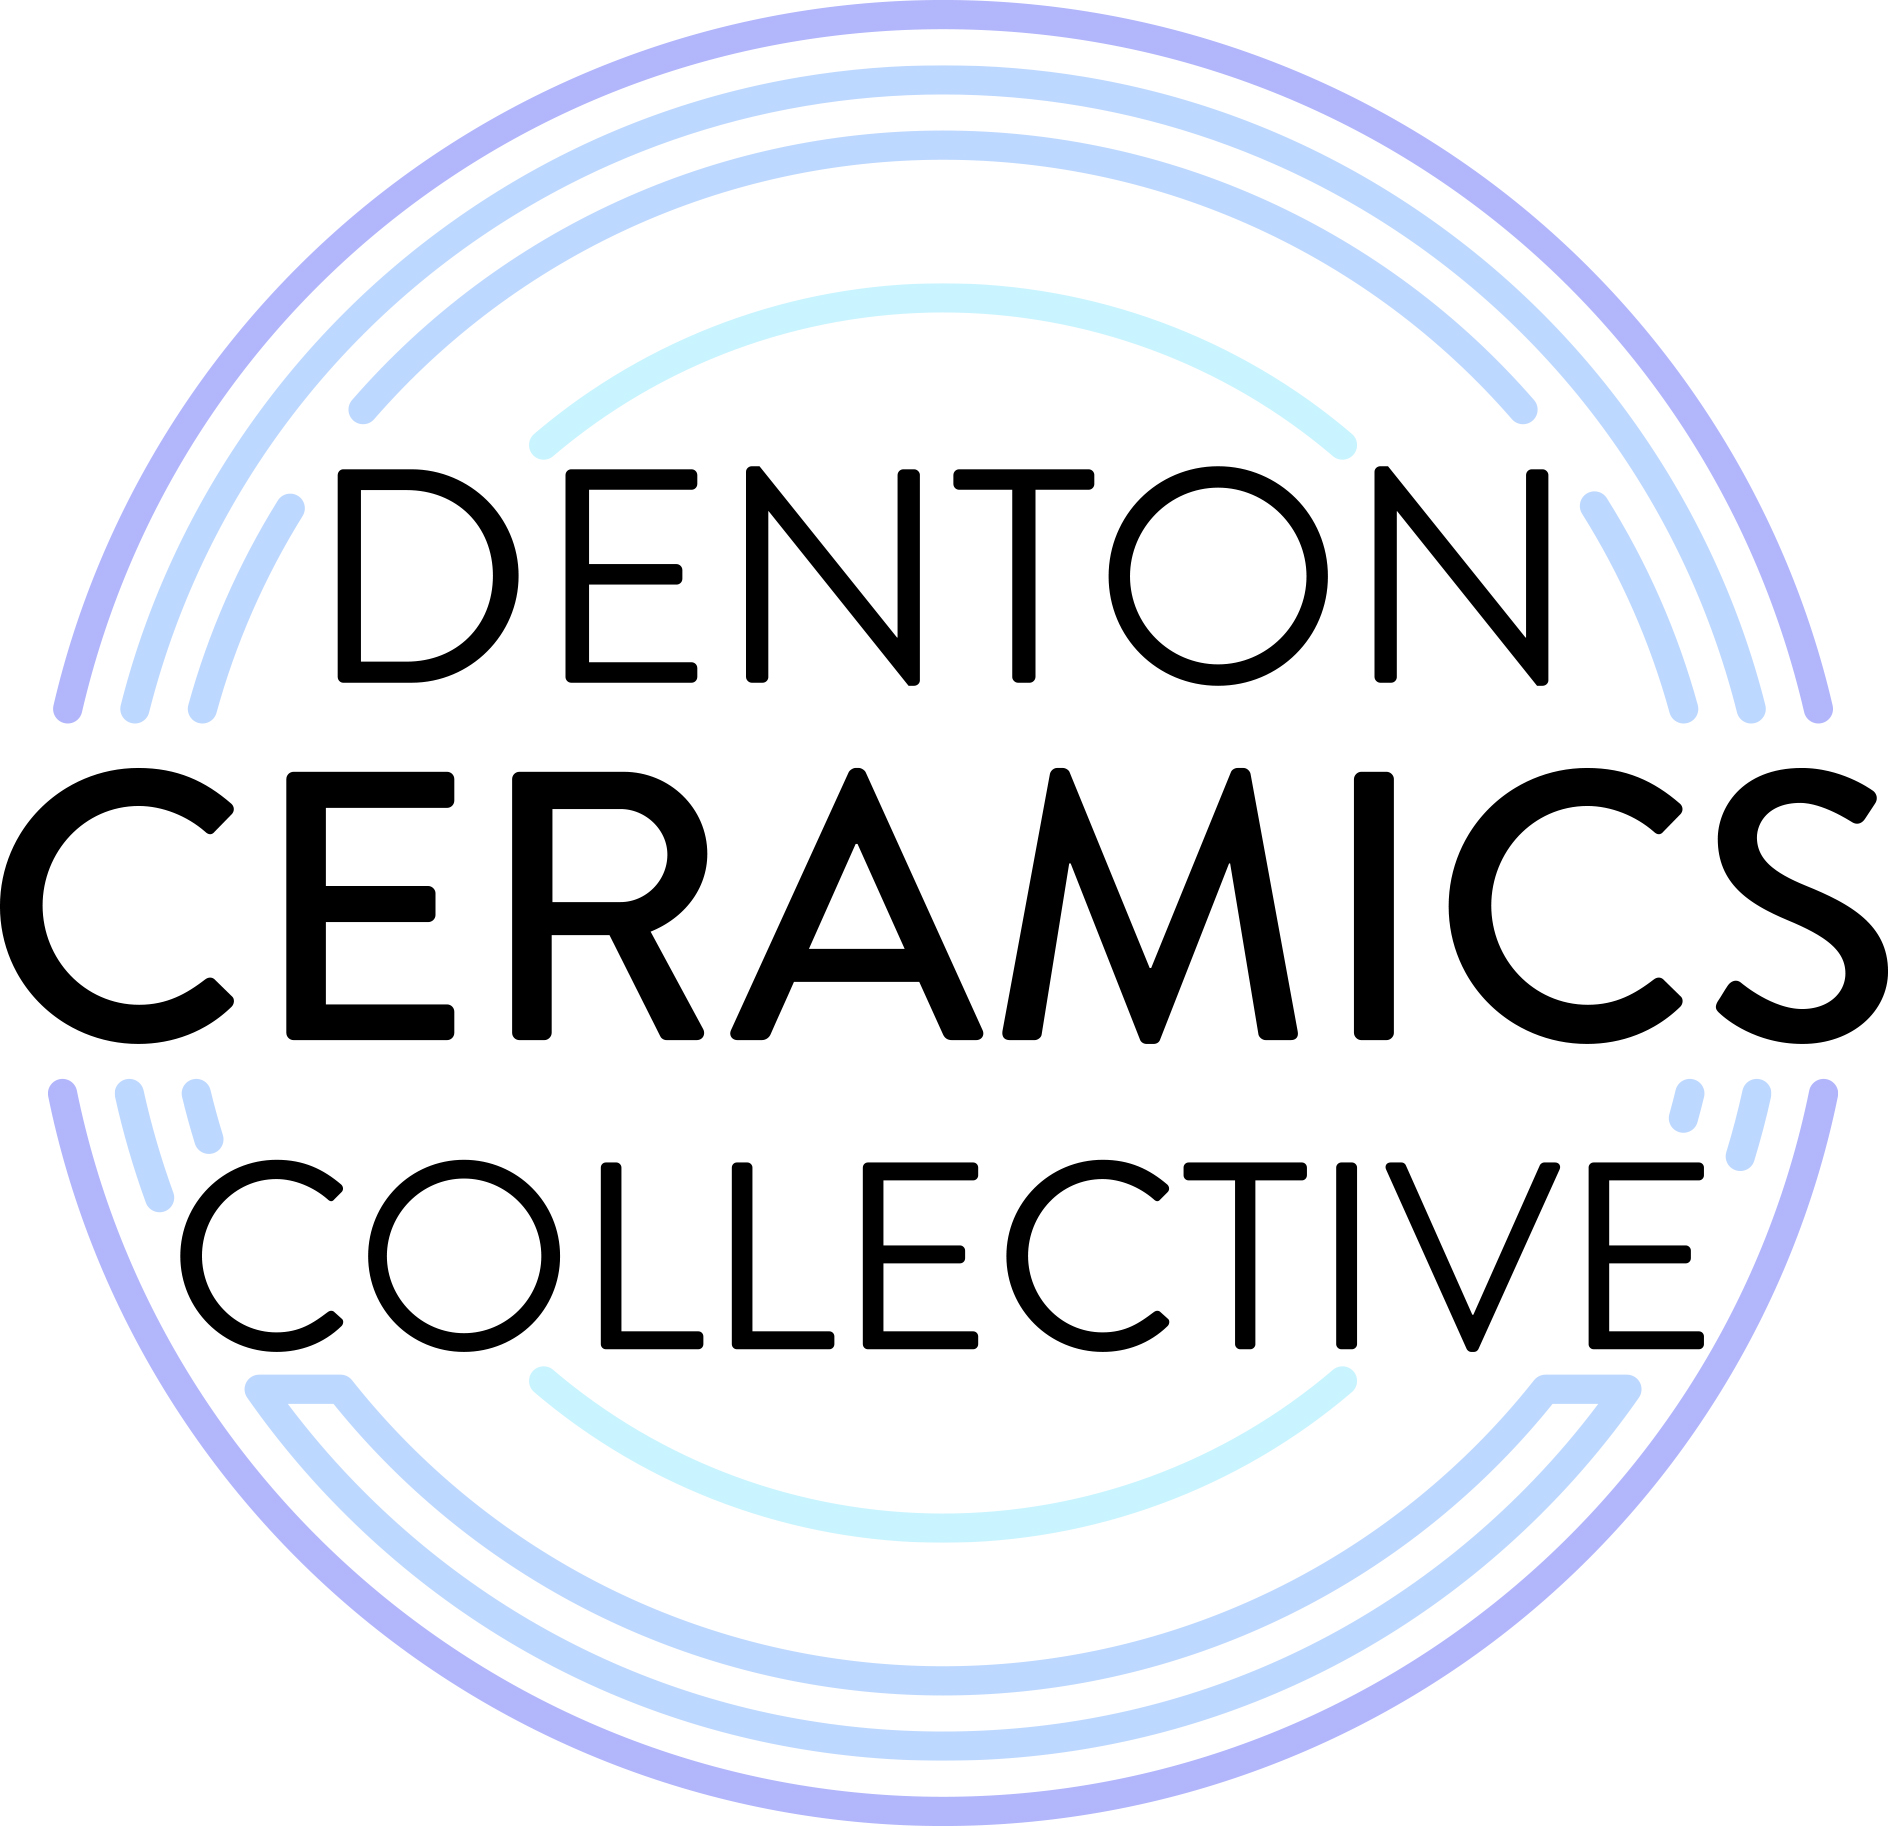 DentonCeramicsCollective_logo_final.jpg